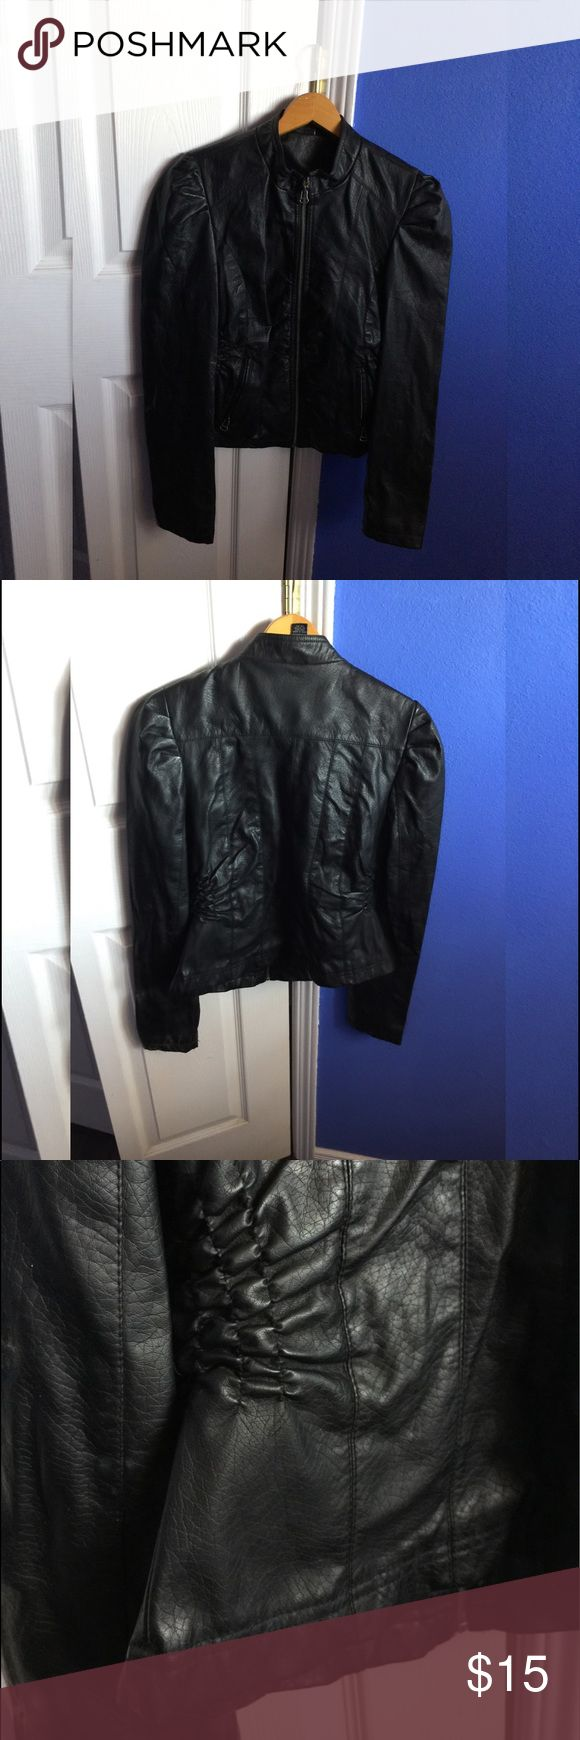 Rue 21 Black Faux Leather Jacket I hardly EVER where this jacket because I have other ones that I prefer. Nothing is wrong with it I'm just trying to declutter👍🏼👍🏼☺️ I recommend this jacket to someone with a longer torso! Size says large but I think it's better for a medium sized person😋 I WILL CONSIDER ALL OFFERS Rue 21 Jackets & Coats